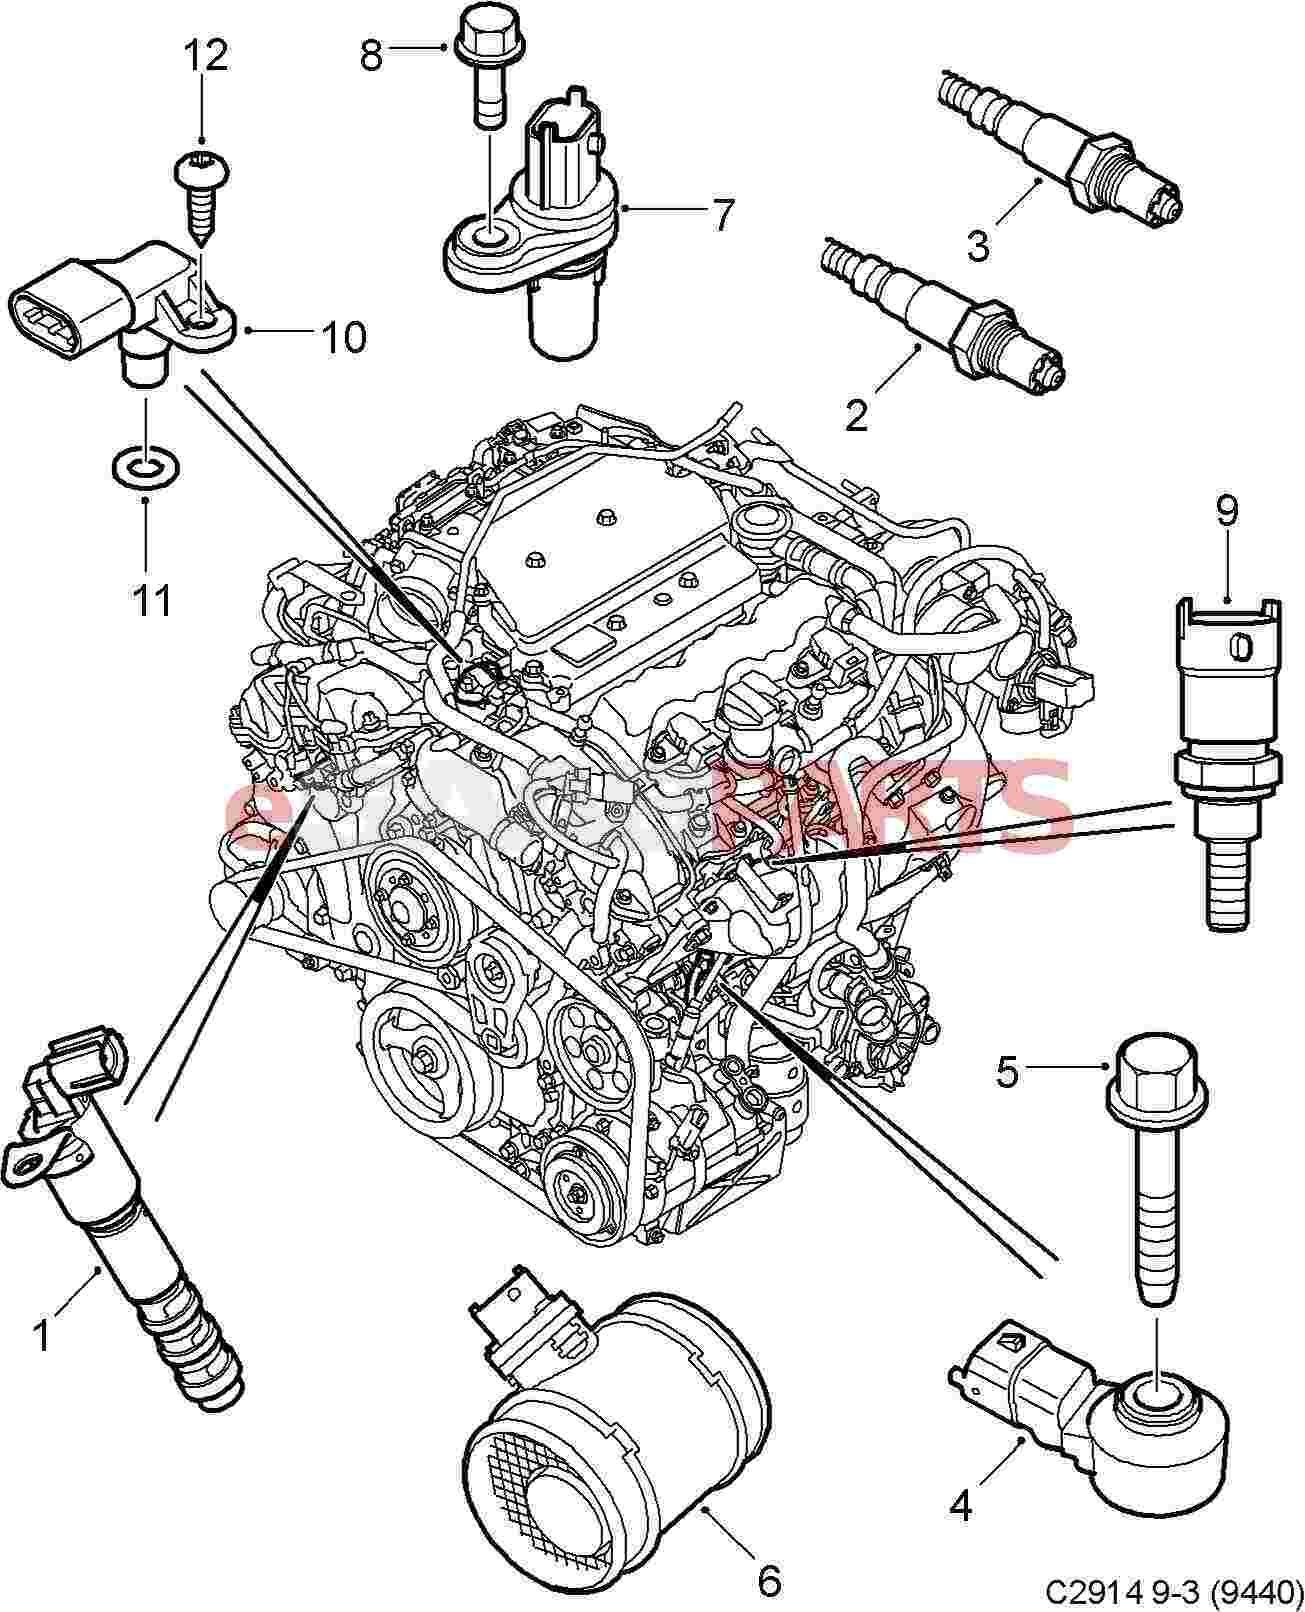 [DIAGRAM_3NM]  2004 Saab 9 3 Aero Fuse Diagram Diagram Base Website Fuse Diagram -  HEARTVALVESDIAGRAM.BISTROTPAPILLON.FR | 2004 Saab Engine Diagram |  | Diagram Base Website Full Edition - bistrotpapillon